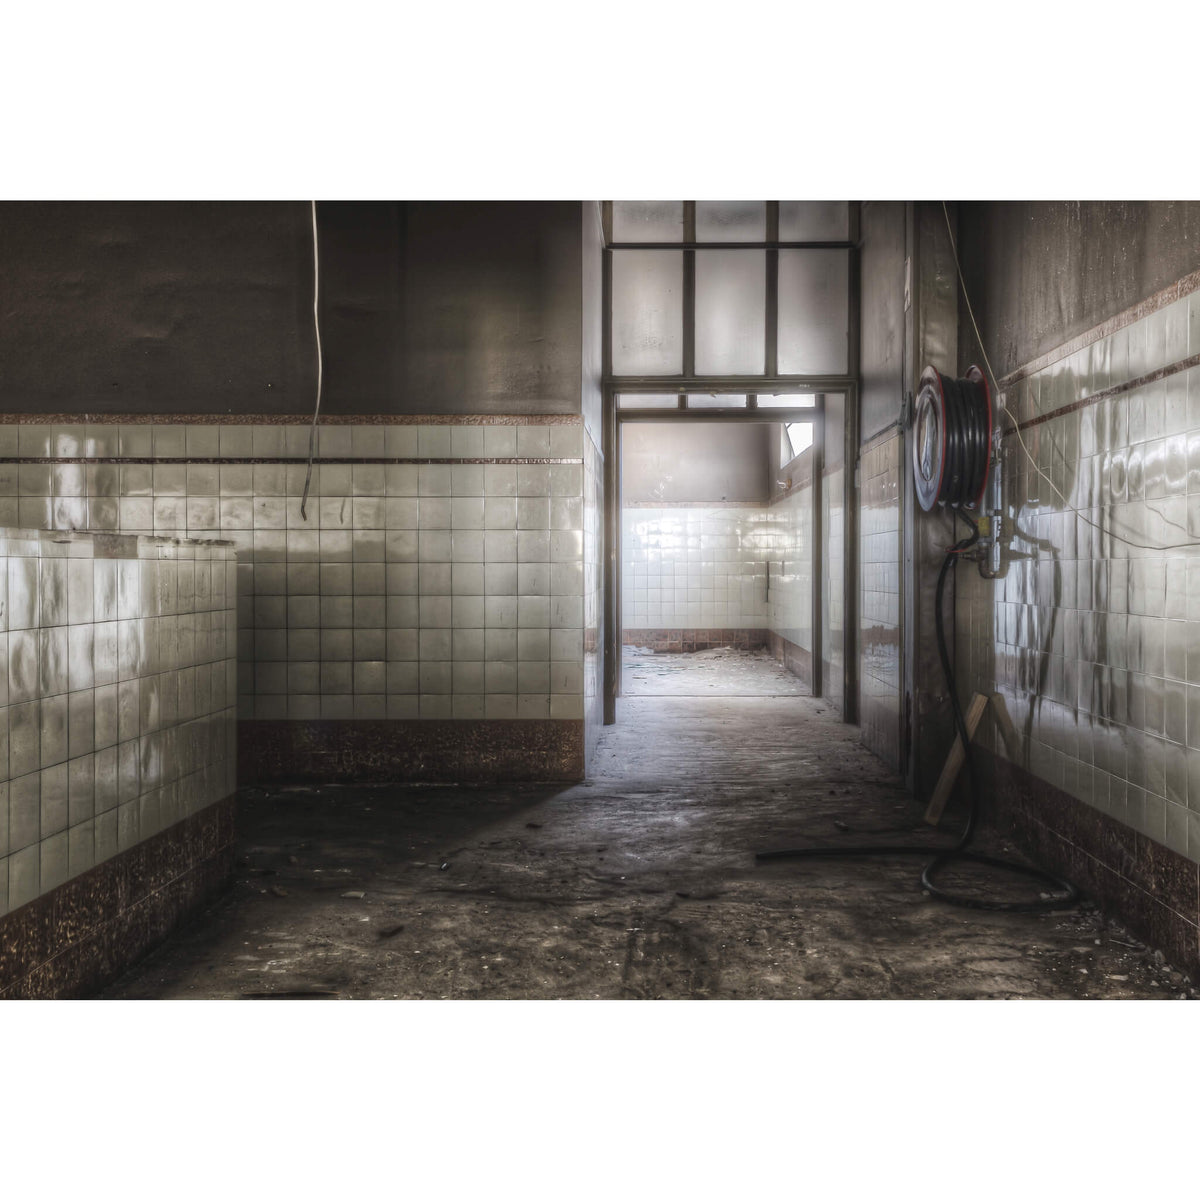 Showers Entrance | ATL Building Fine Art Print - Lost Collective Shop